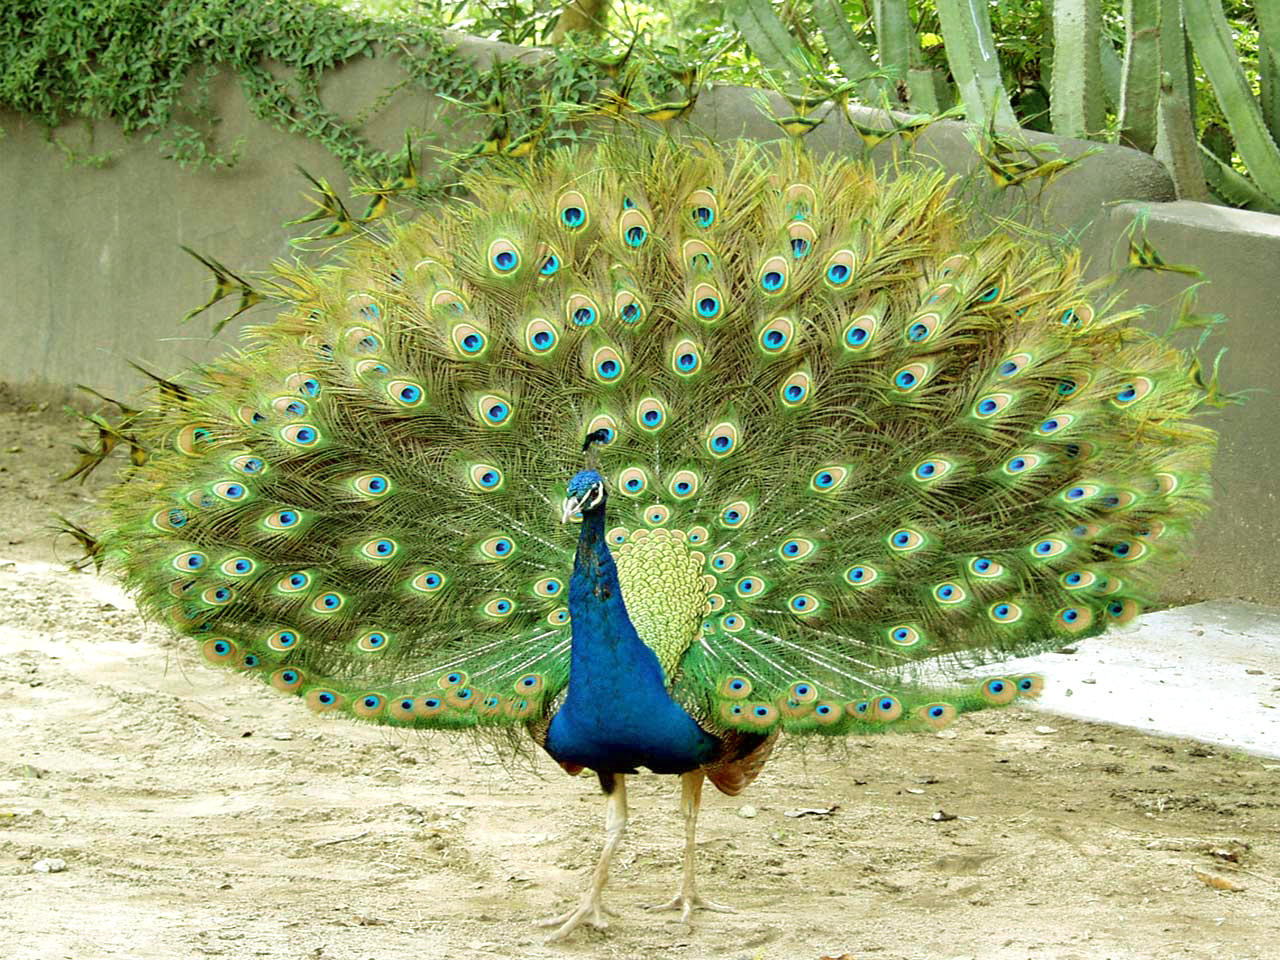 Top 28 Most Beautiful And Sweet Peacock Wallpapers In HD ...  Top 28 Most Bea...